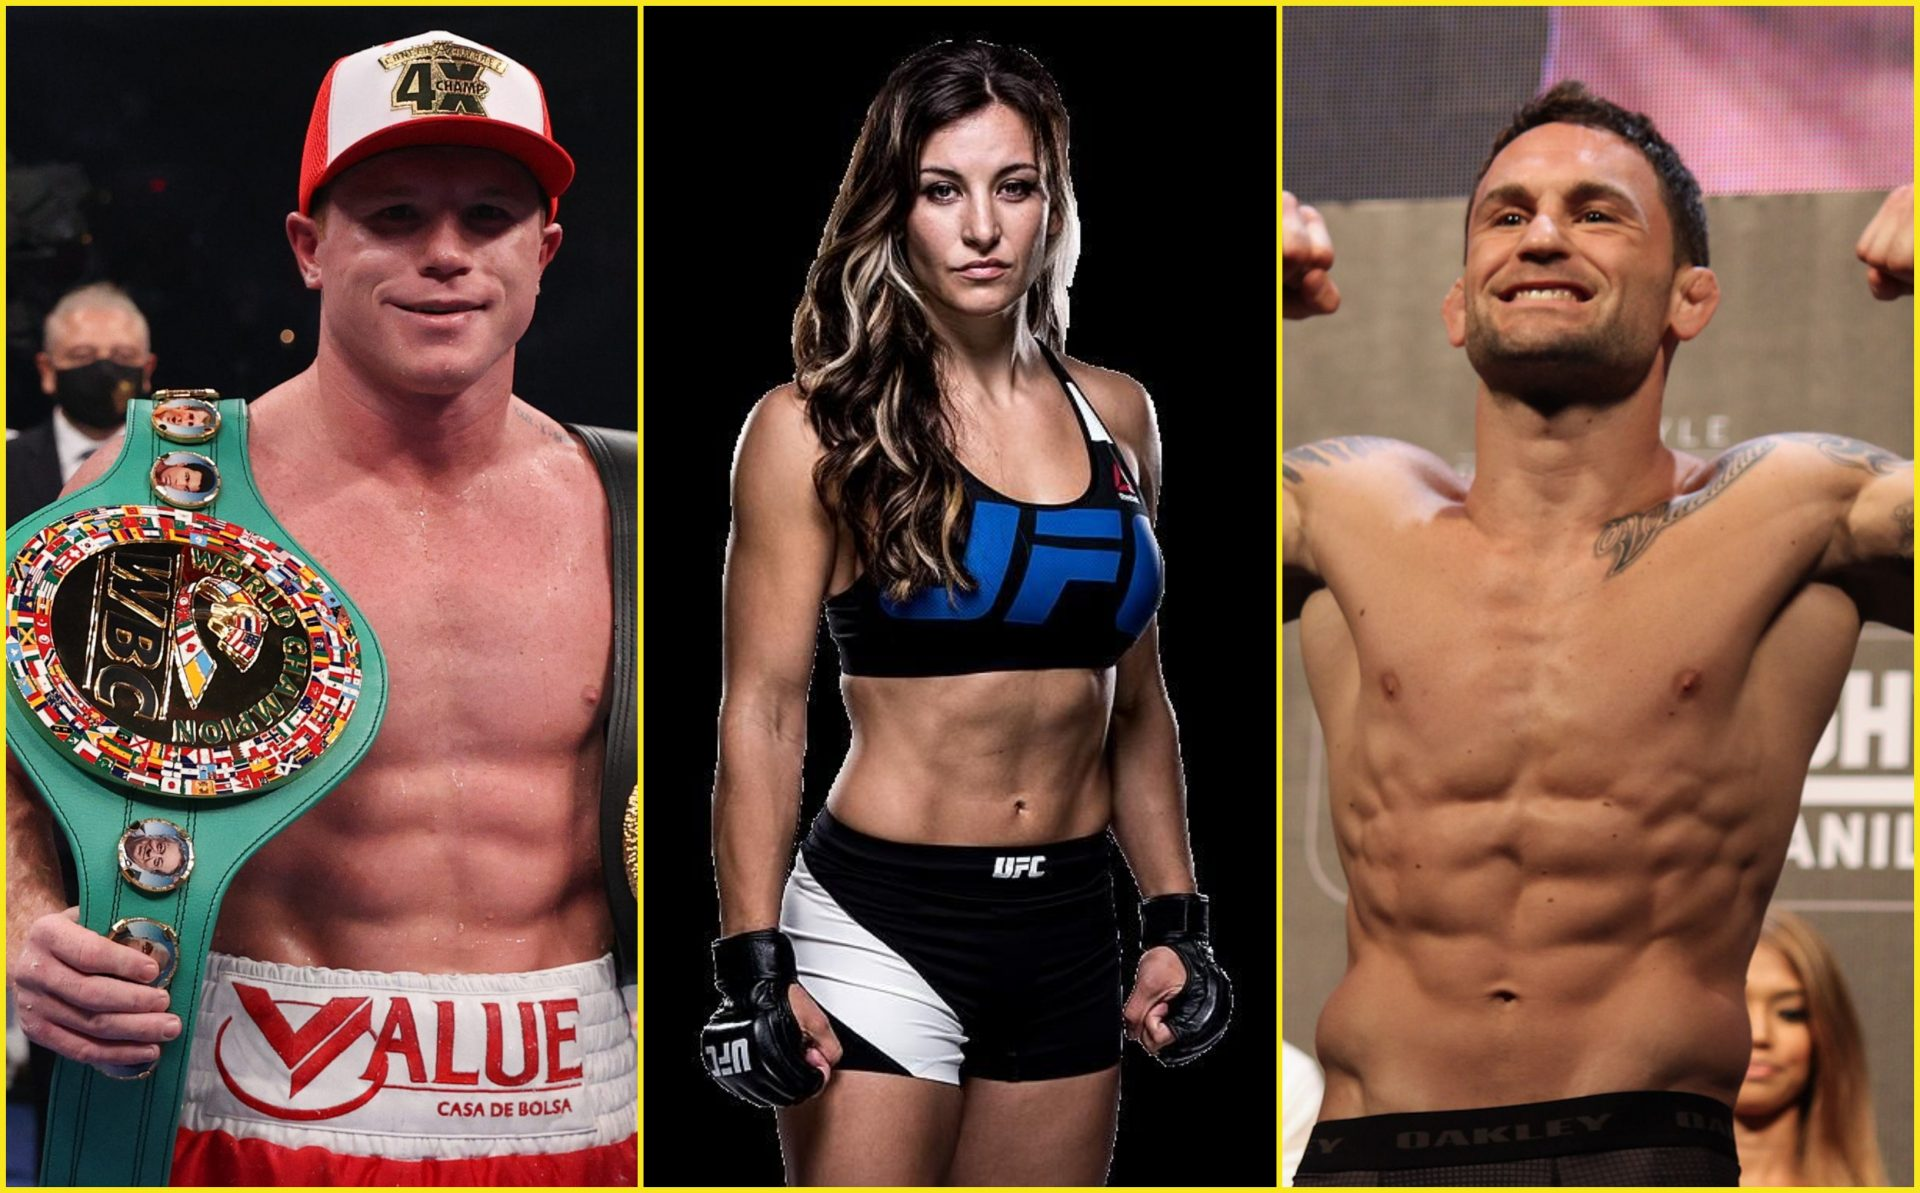 MMA India's Weekly Round Up (15-21st December): Miesha Tate wants to make MMA return, Frankie Edgar returns against Cory Sandhagen and more - tate